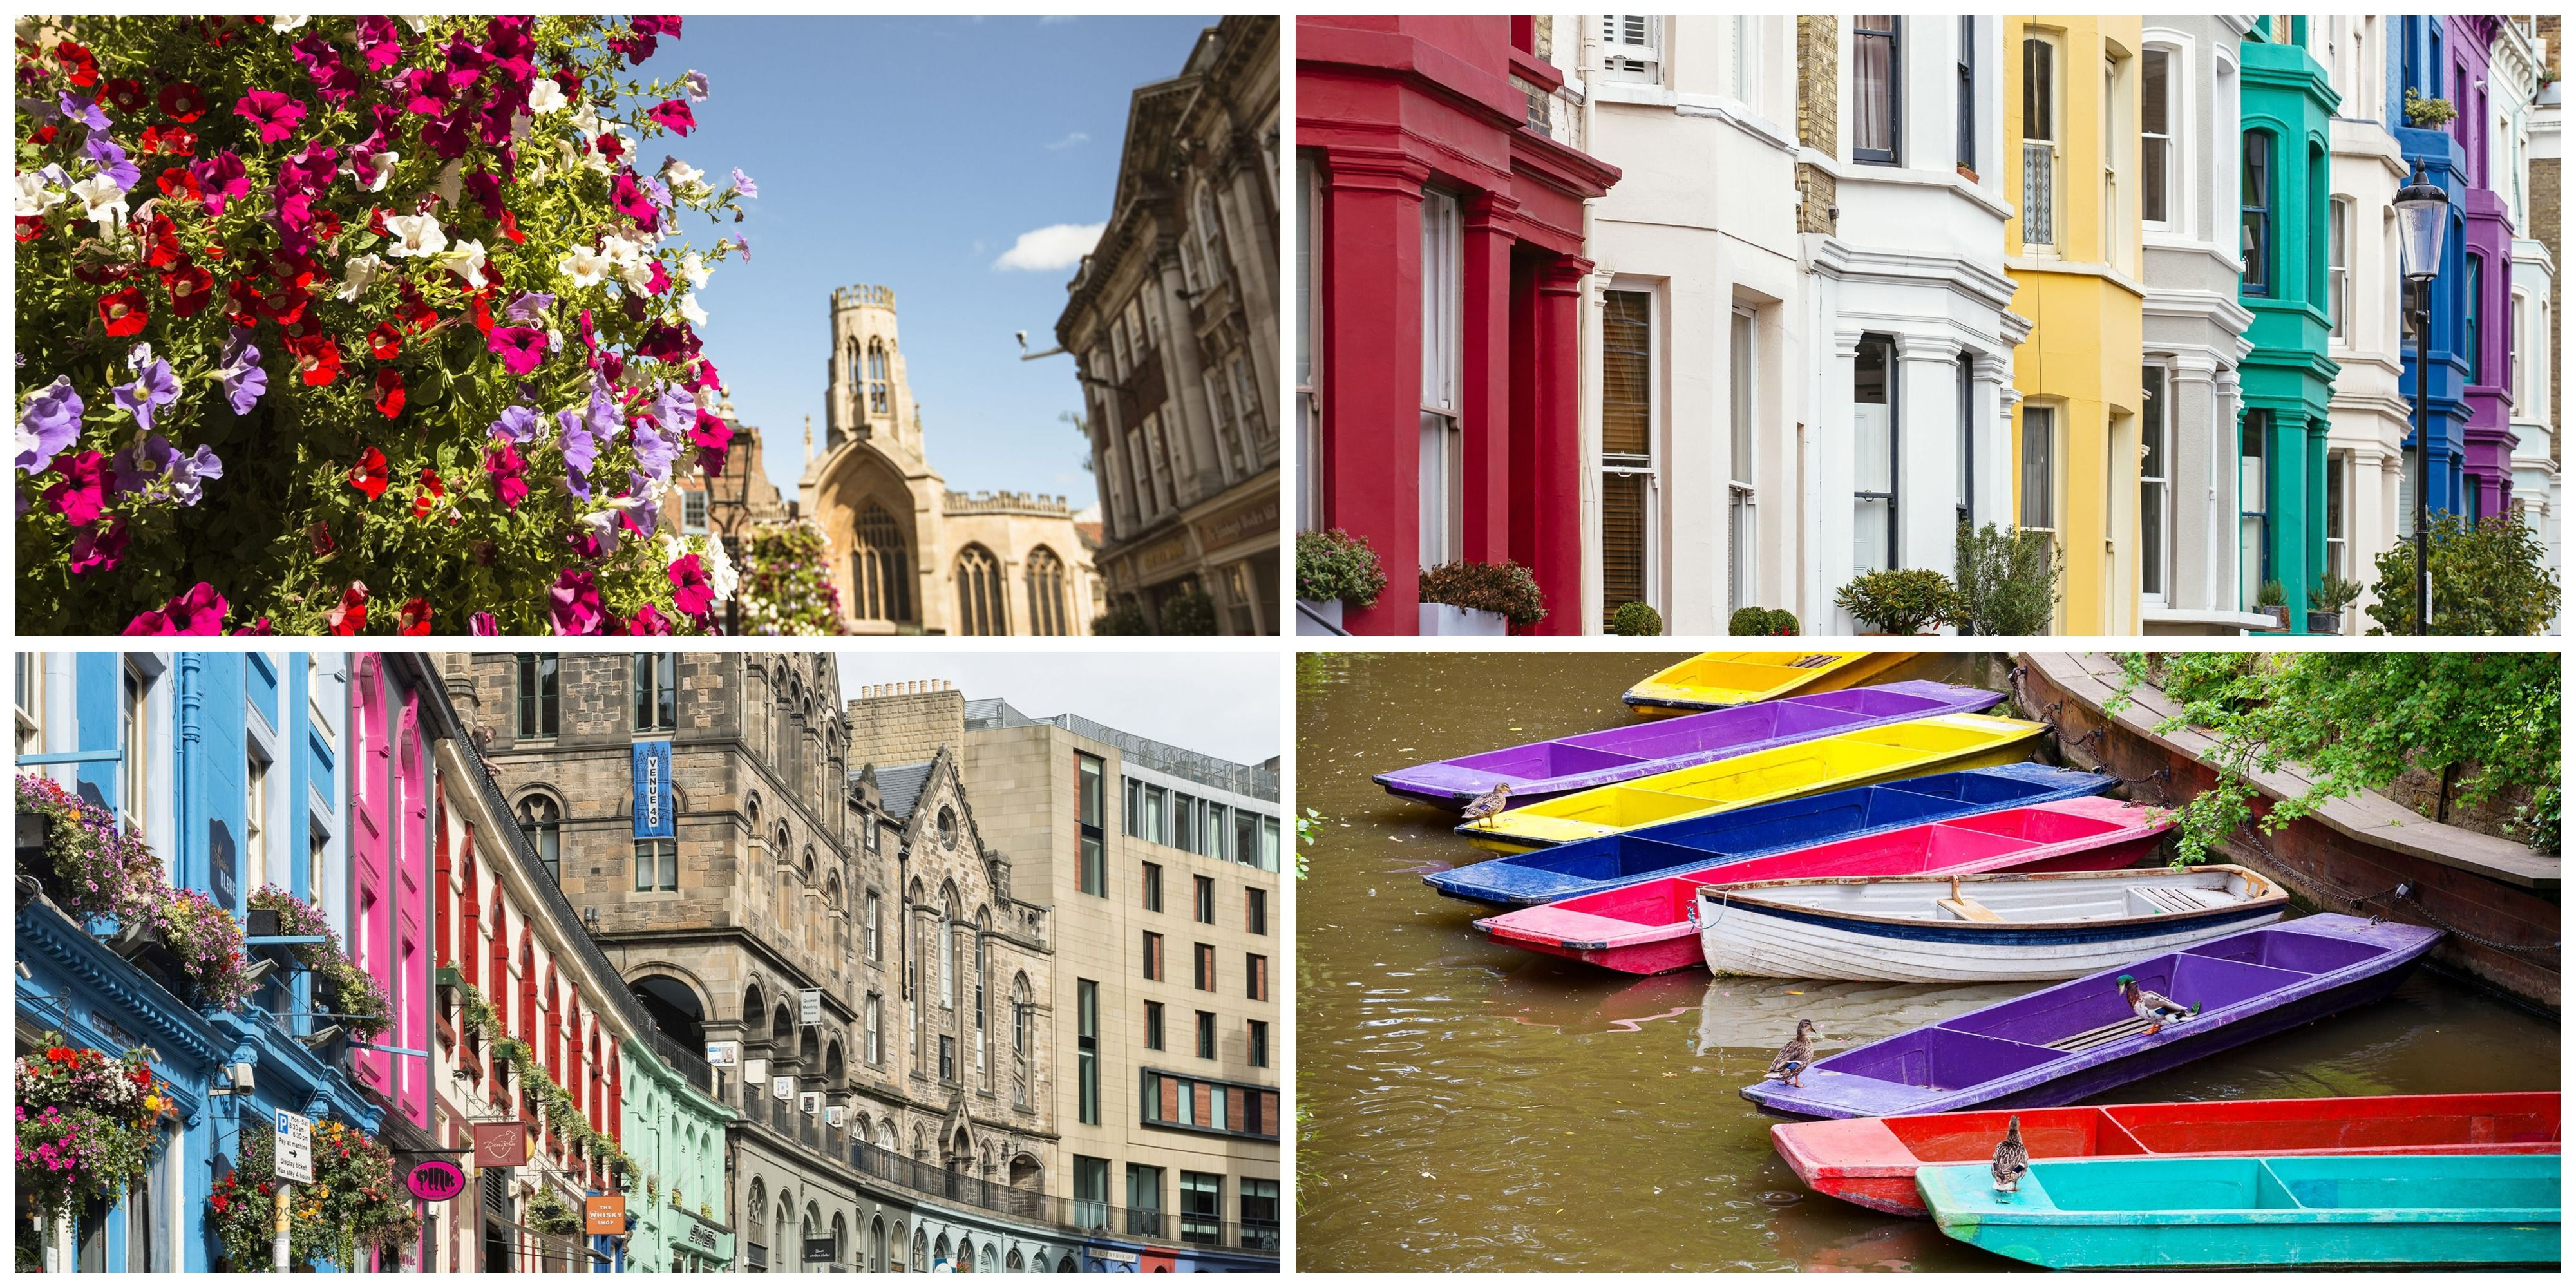 The 15 most colourful places to live in the UK revealed